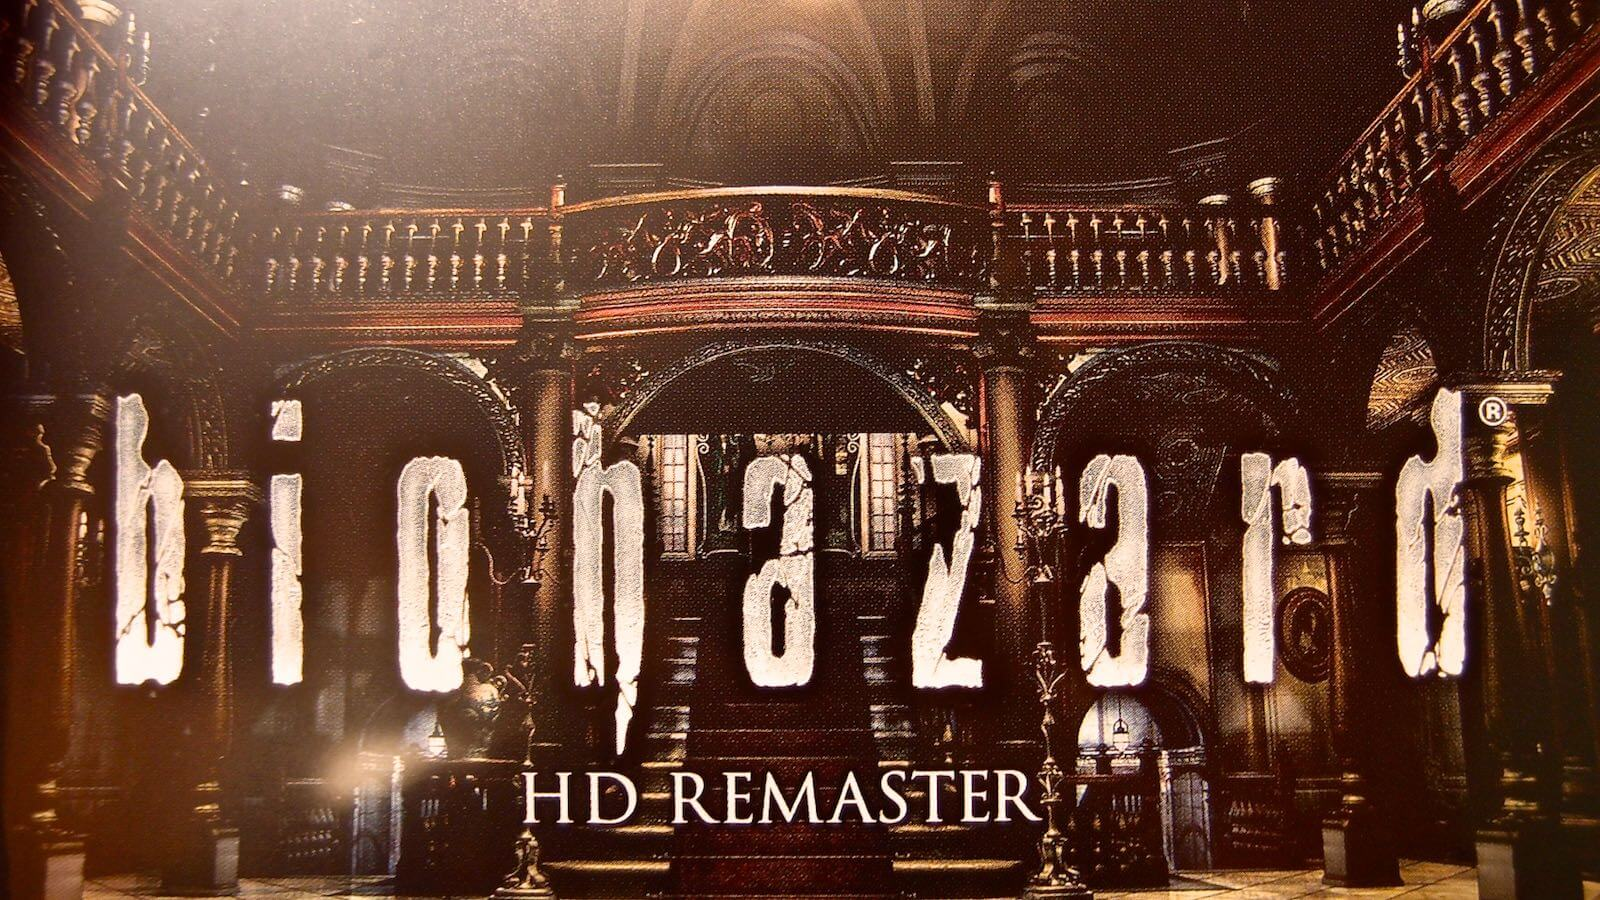 0112 Baiohazad HD Remaster Collector s Complete Edition 01